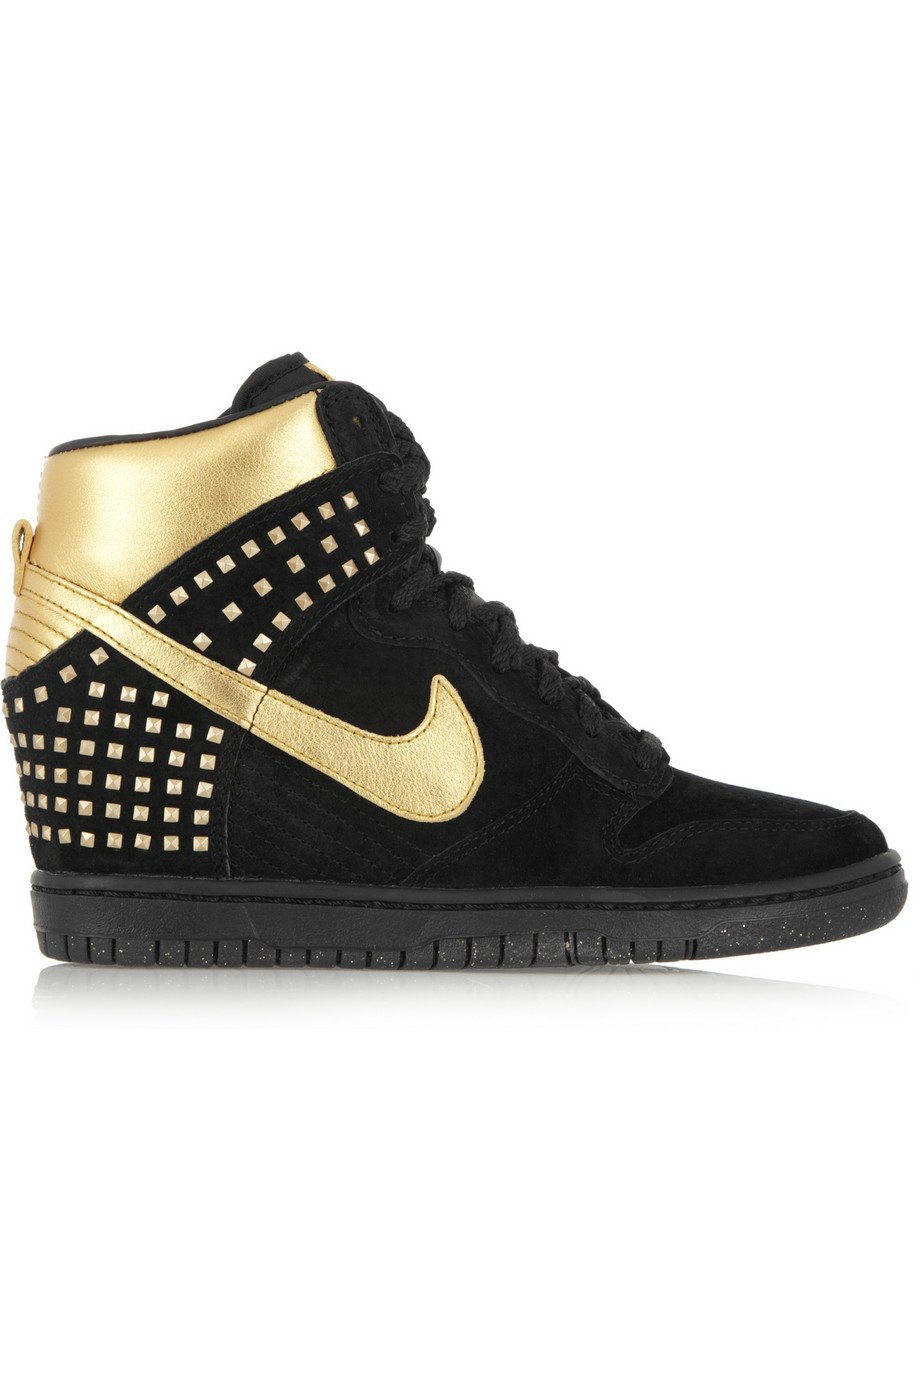 nike dunk sky hi suede and metallic leather wedge sneakers. Black Bedroom Furniture Sets. Home Design Ideas